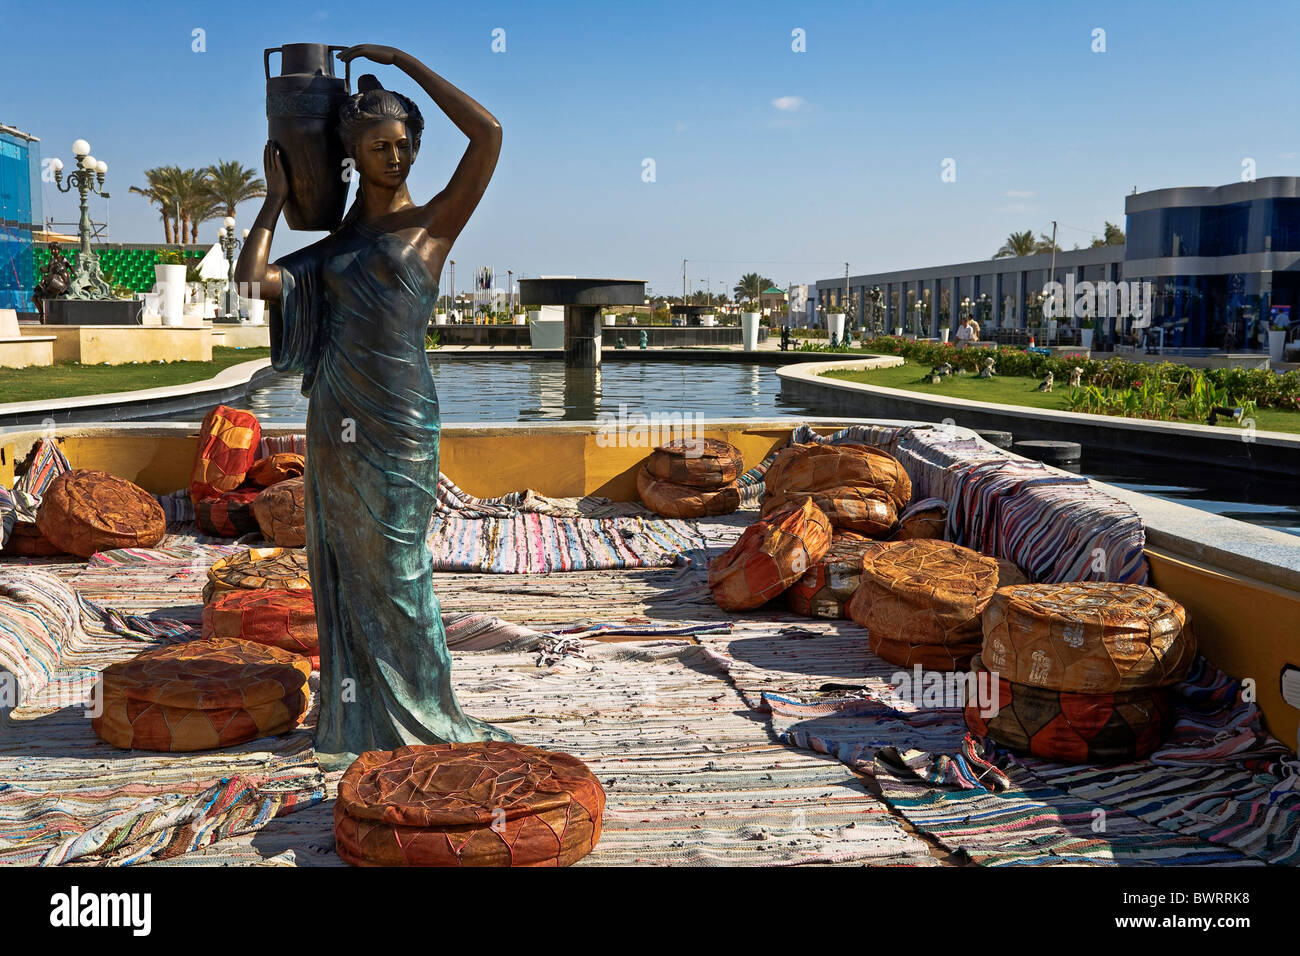 Bronze sculpture in a lounge for water pipe smoking, Sharm el Sheikh, Egypt, Africa - Stock Image